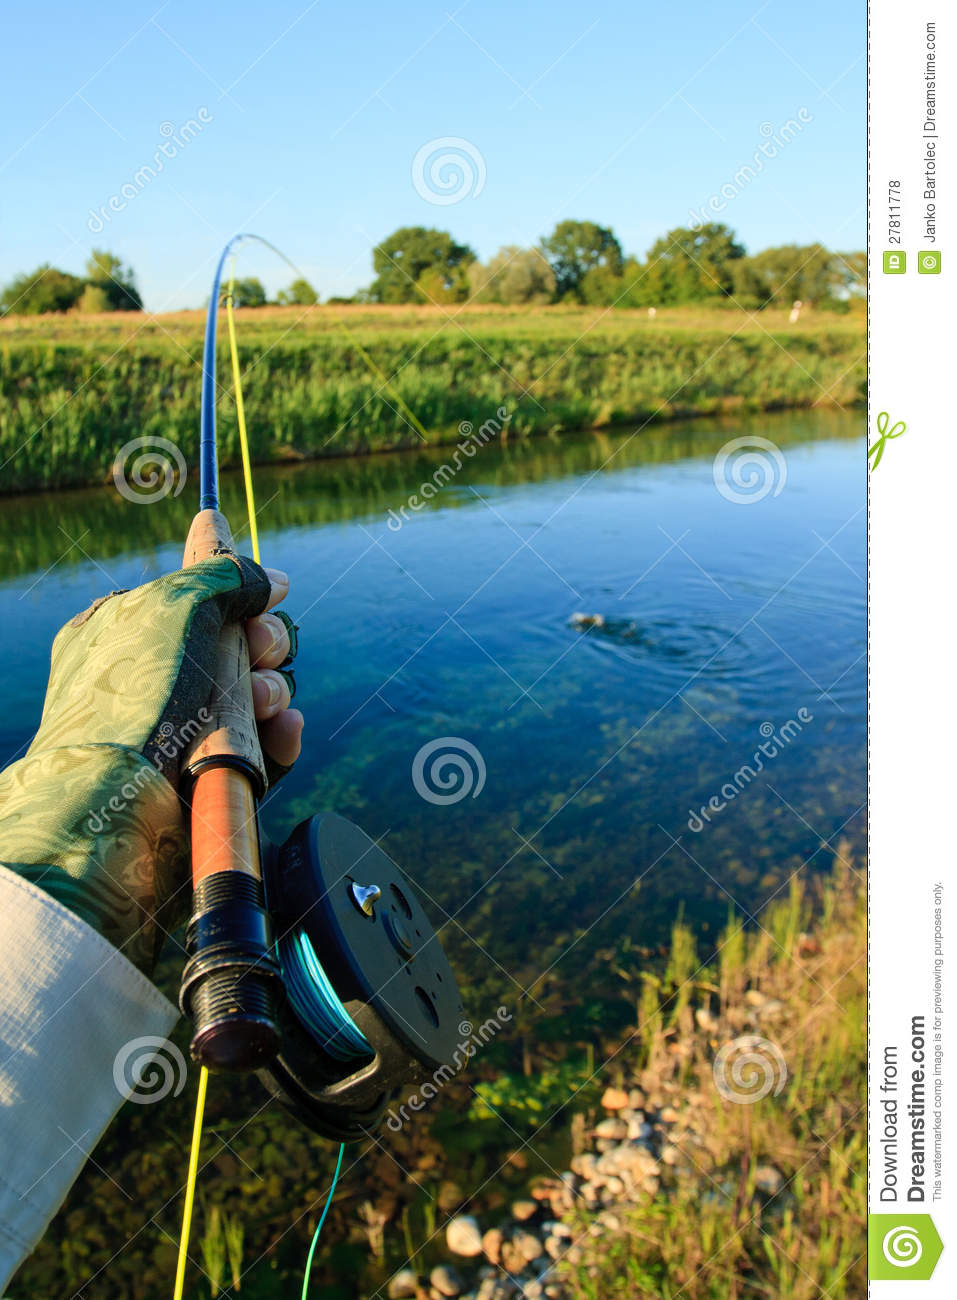 Fighting trout royalty free stock photos image 27811778 for Places to fish near me for free